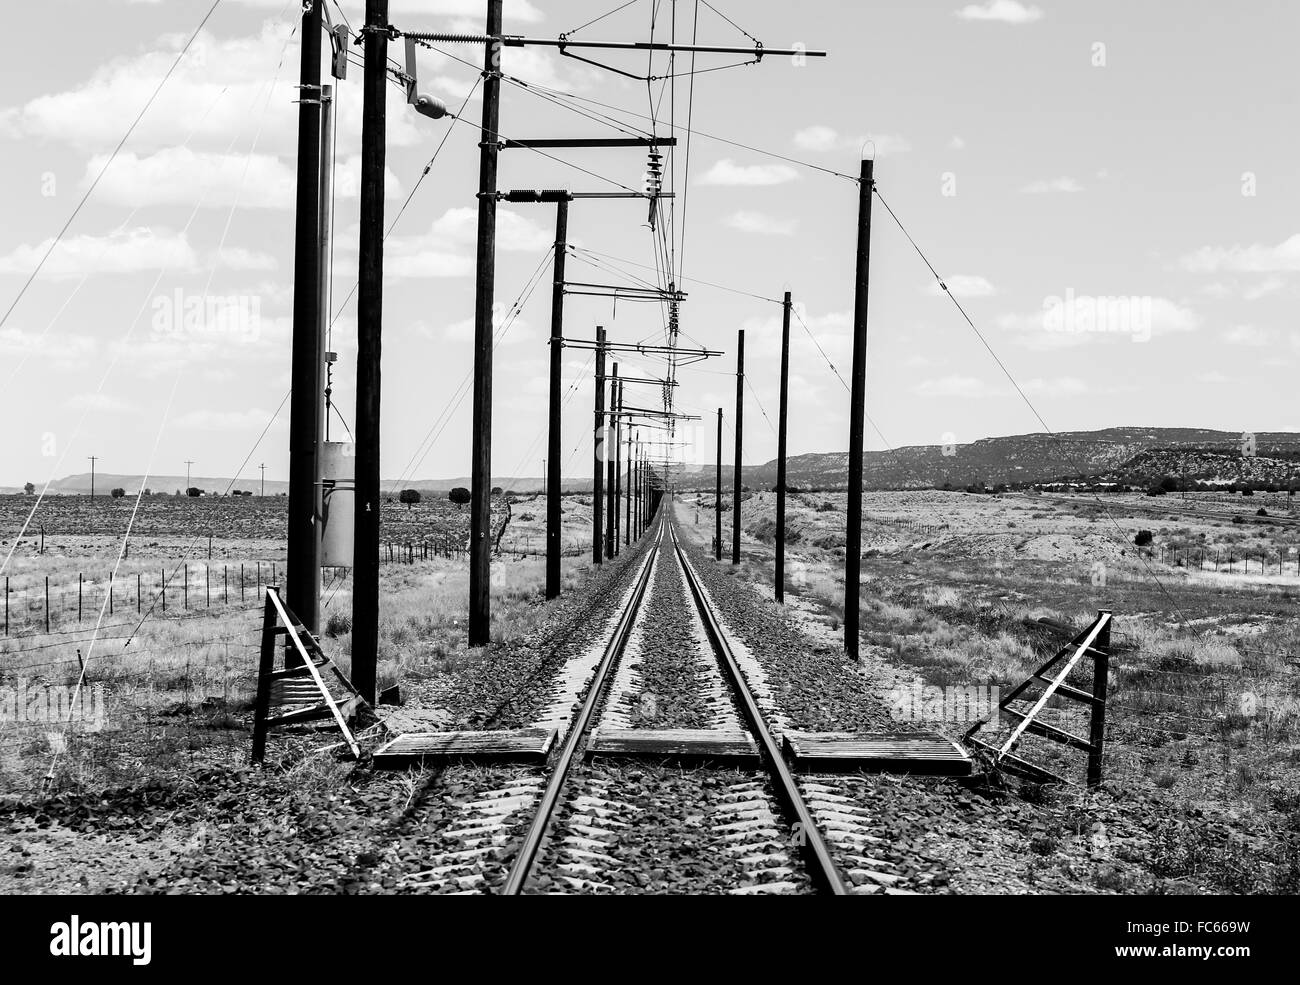 Railroad tracks in monochrome - Stock Image